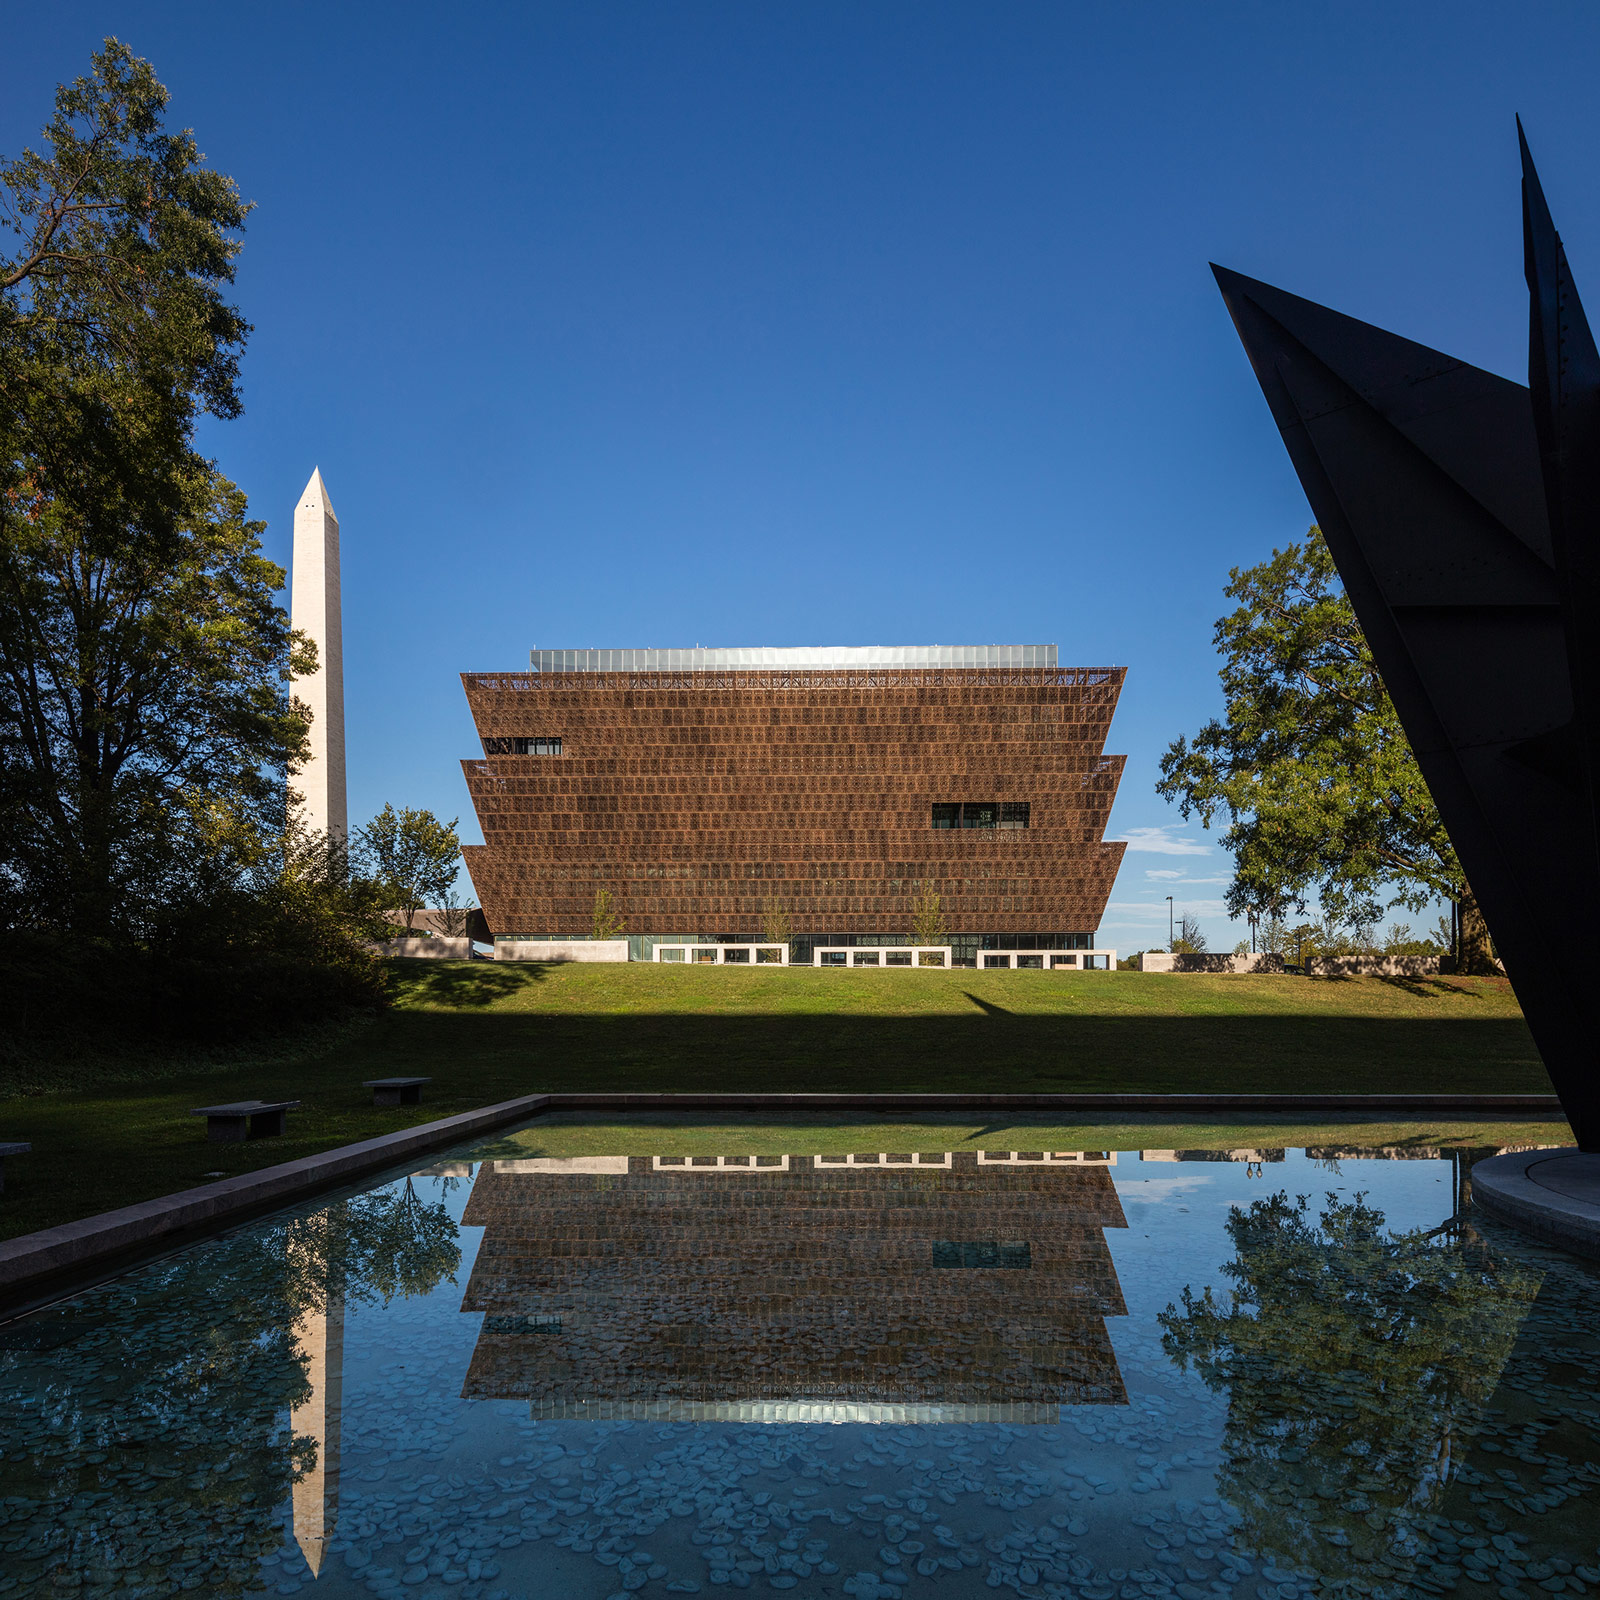 Photo of The National Museum of African American History and Culture on the National Mall